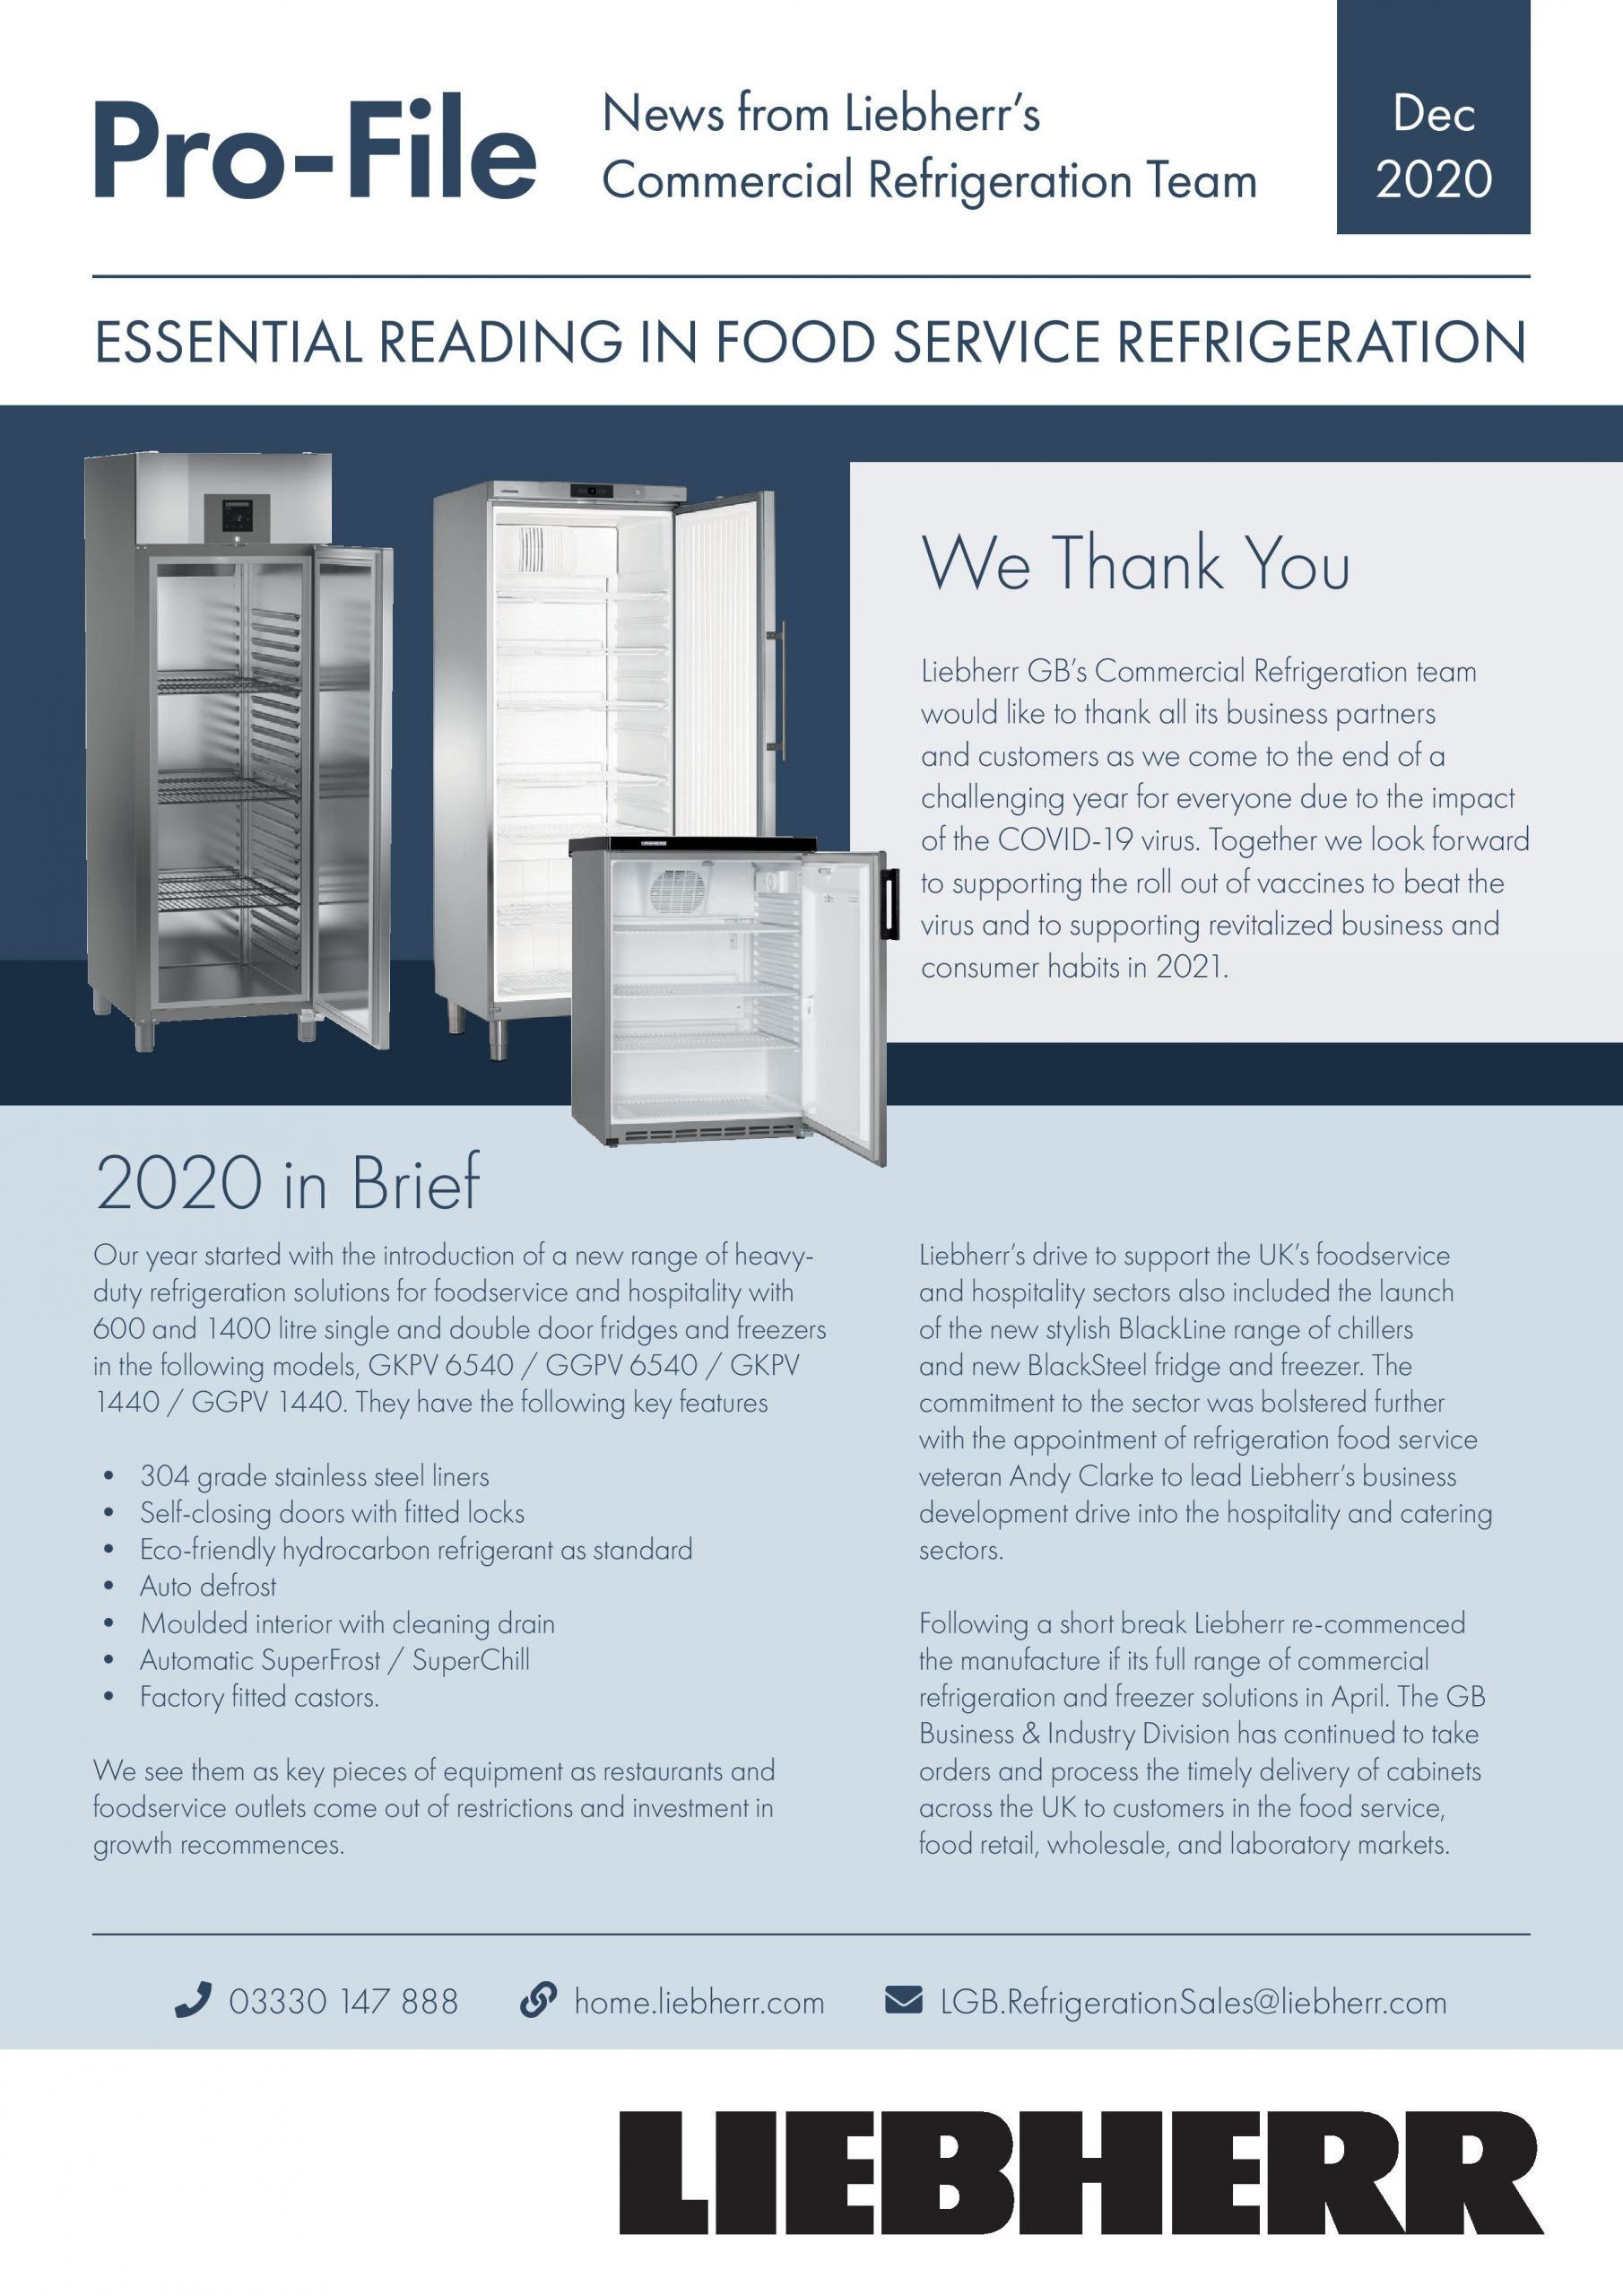 Liebherr Refrigeration Newsletter image from December 2020 Pro-File edition